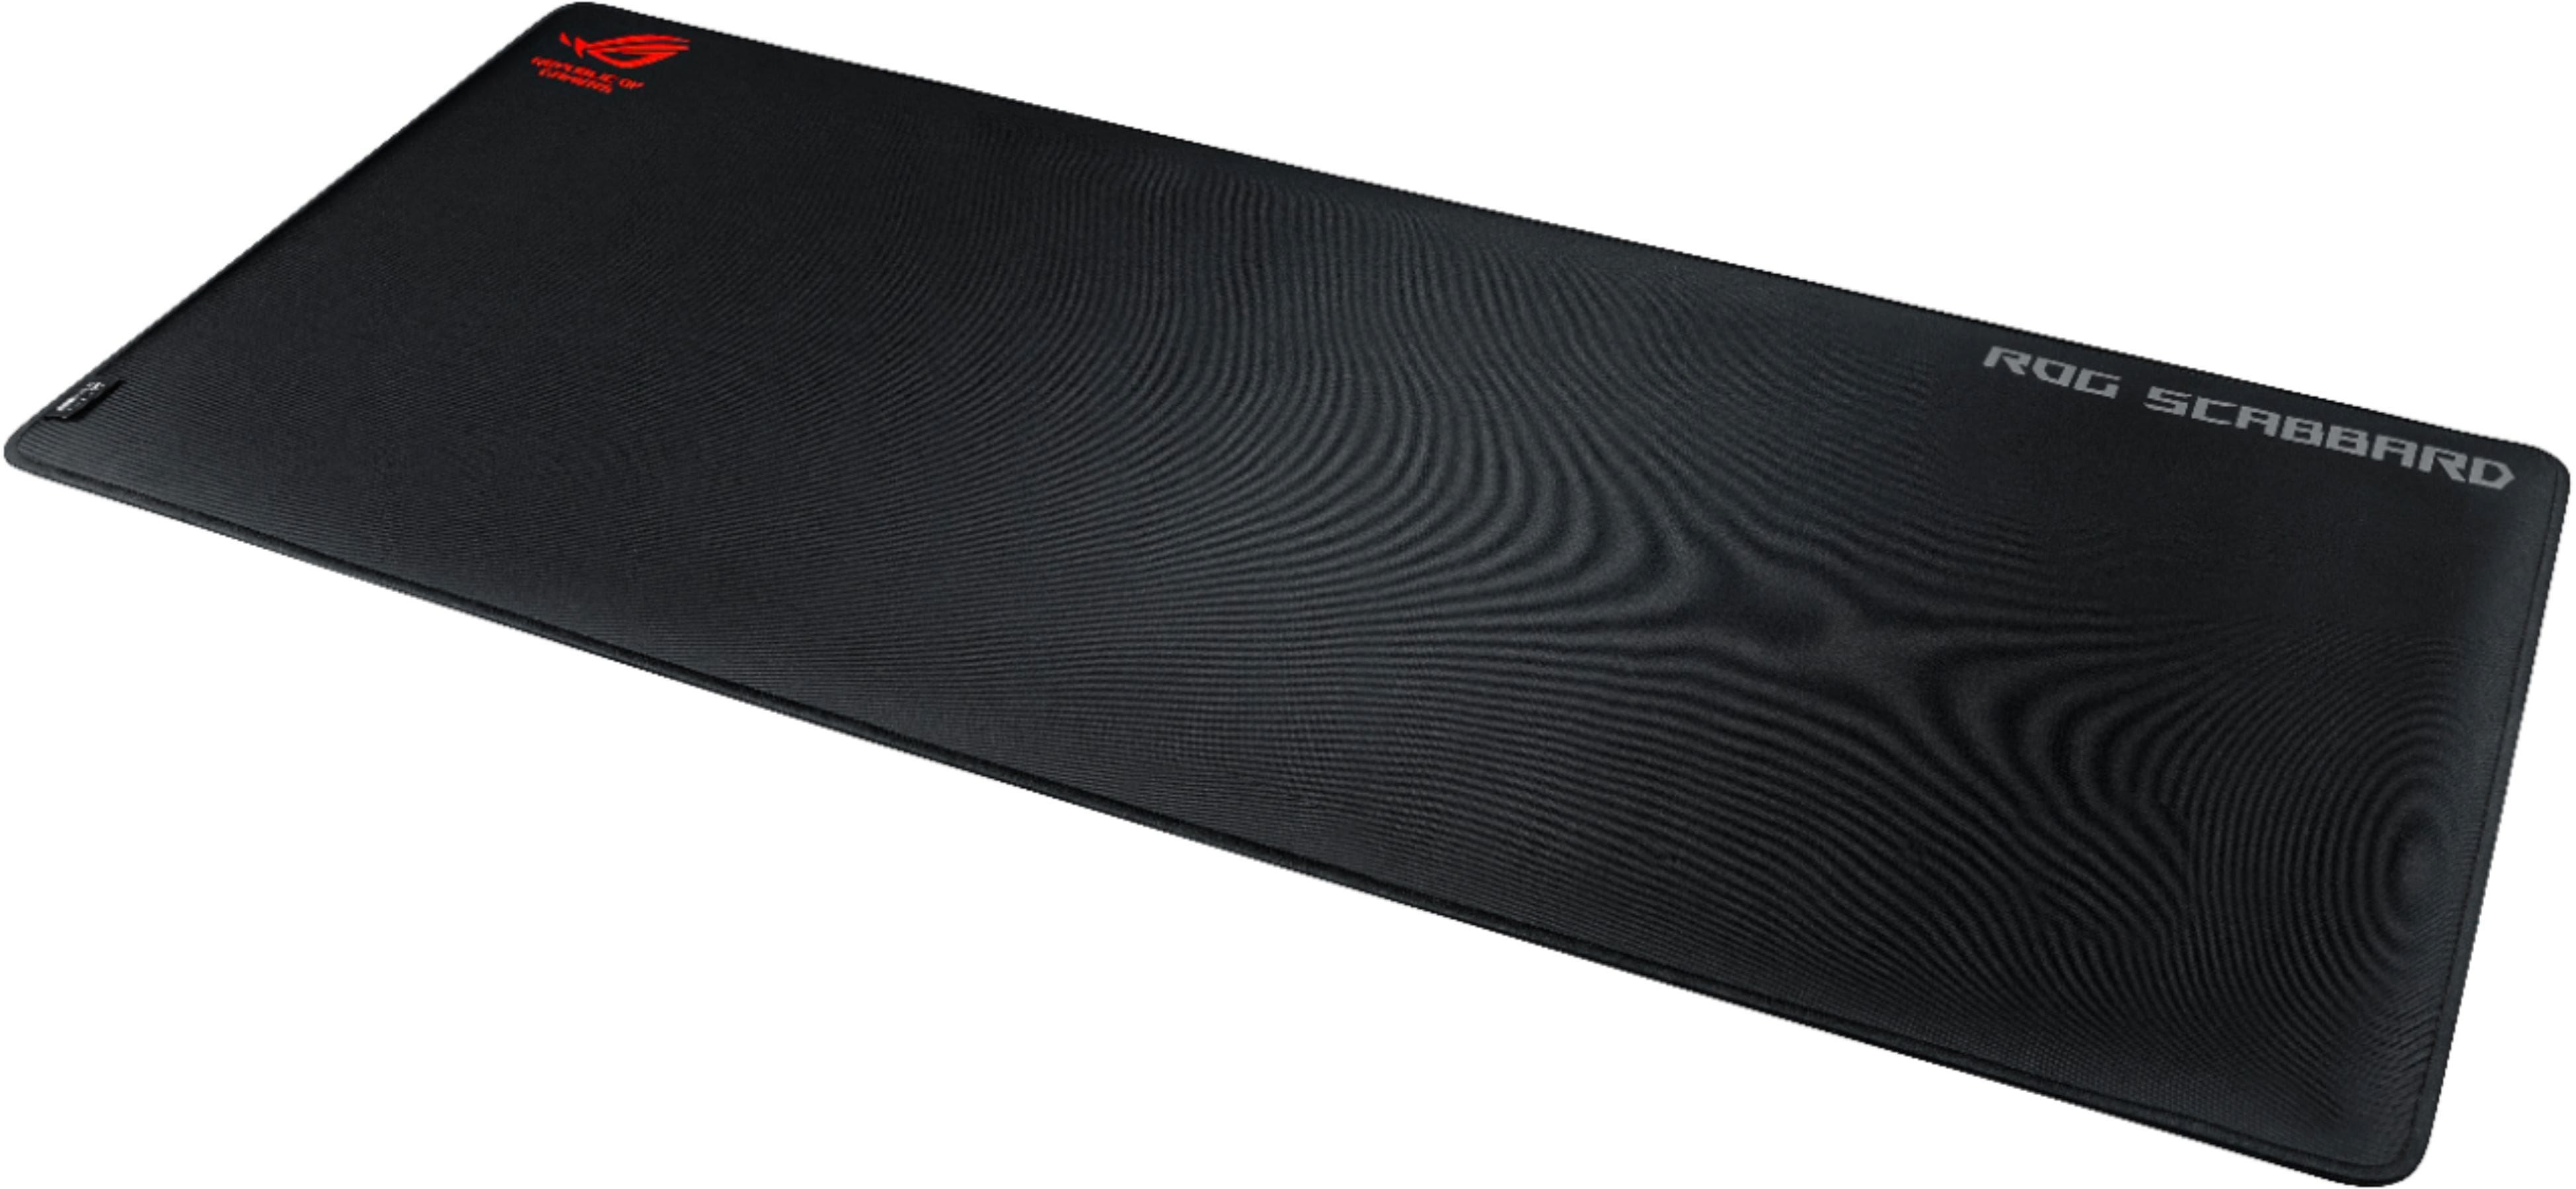 Asus Mouse Pad